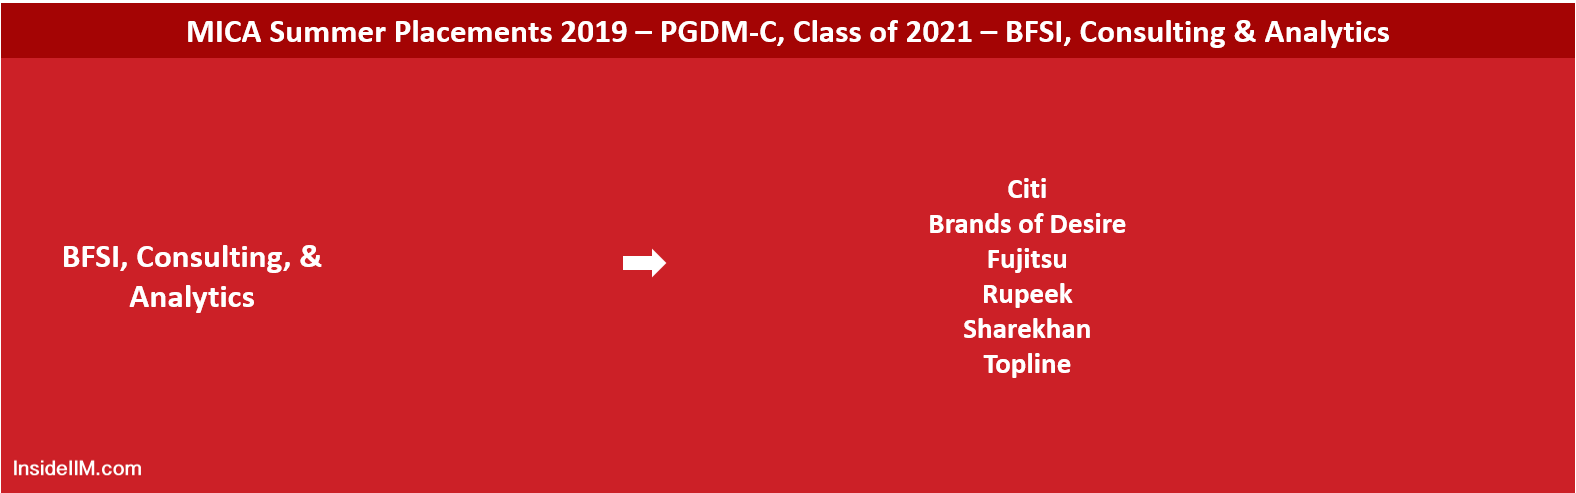 MICA Summer Placements 2019 - BFSI, Consulting & Analytics